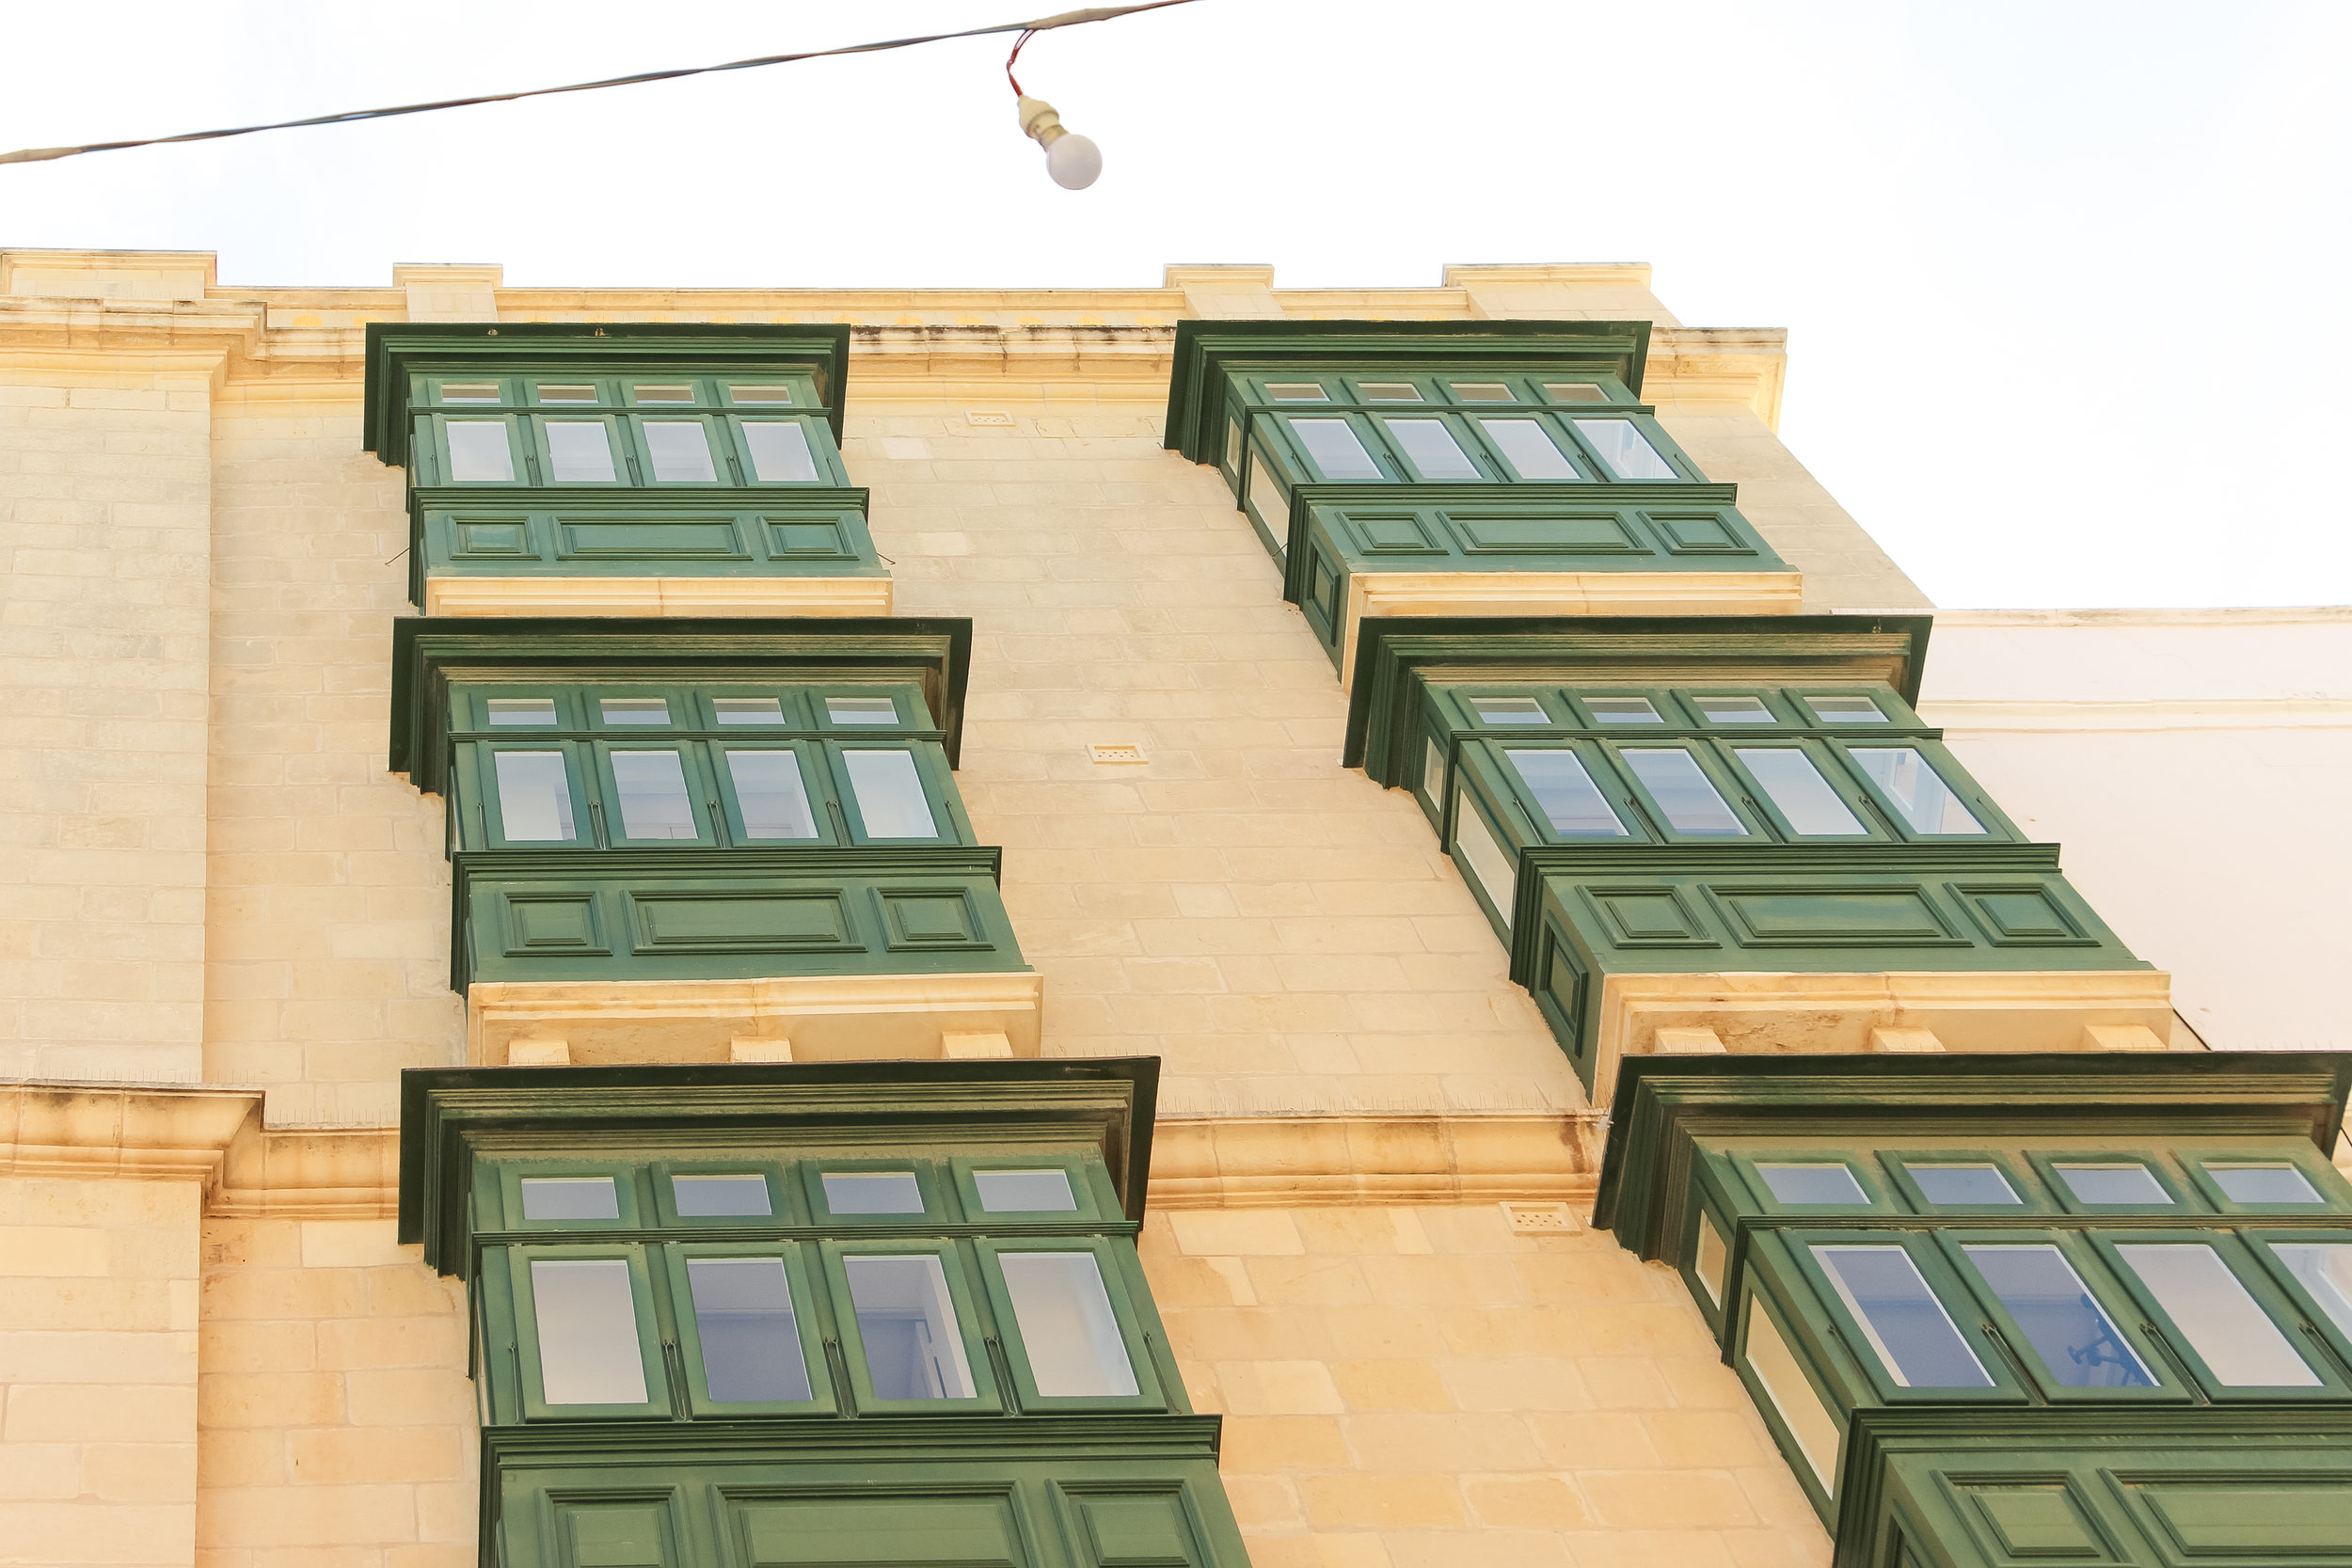 Maltese windows | House of Malta, Green Traditional Enclosed Wooden Balcony | Old Town of Valletta | - Thinking About Appreciation For Quality In Malta | Malta, Europe | DoLessGetMoreDone.com | - Canon Minimal Travel Documentary Photography - search for Liveability | Sustainability